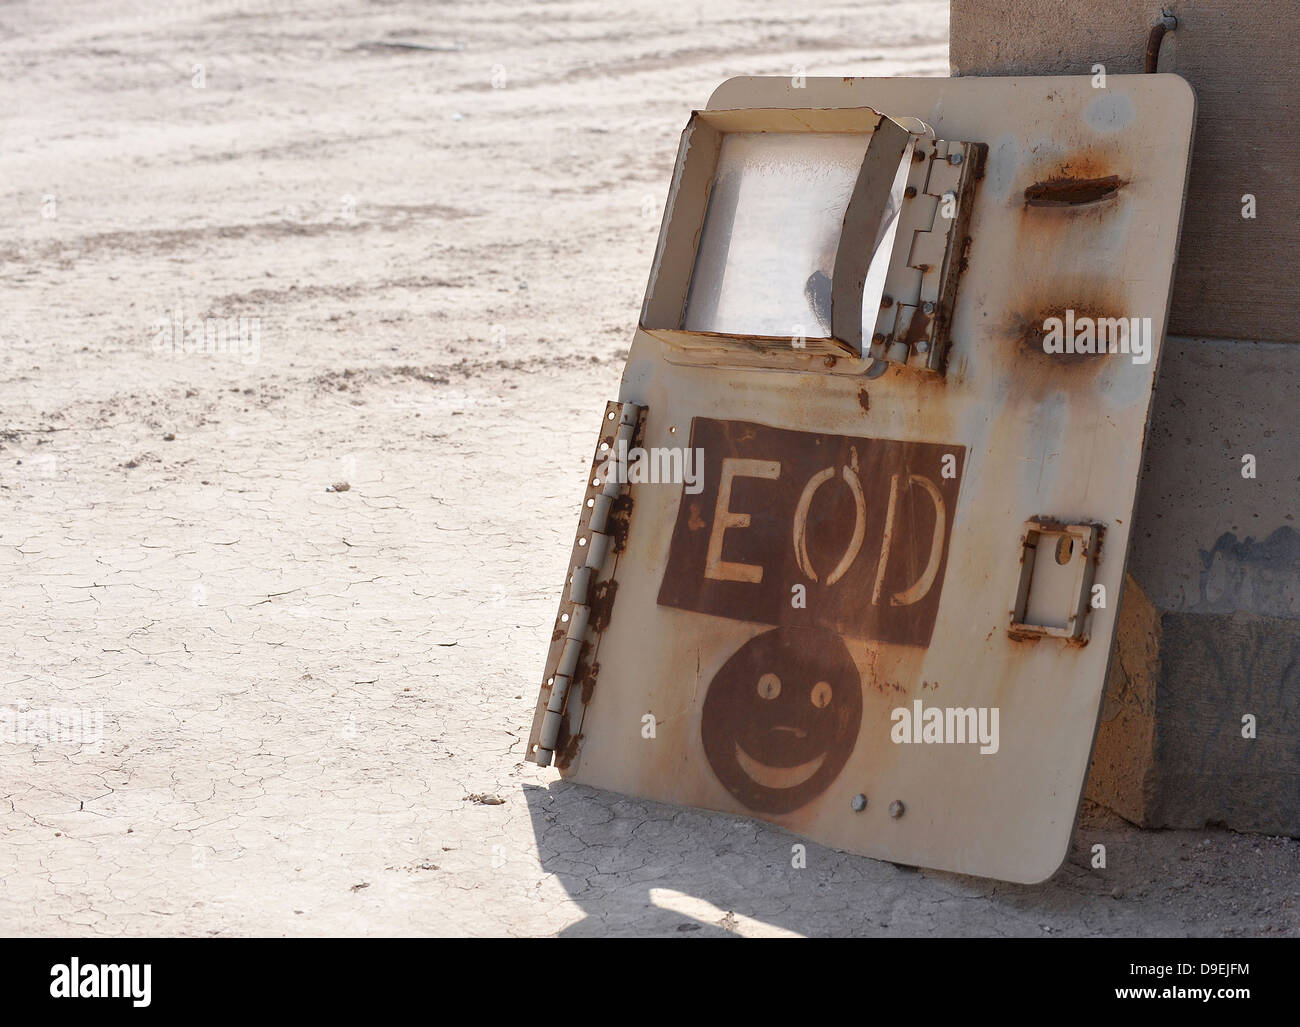 An Explosive Ordnance Disposal logo is painted on an old vehicle door at one of the ranges at Ali Air Base, Iraq. - Stock Image